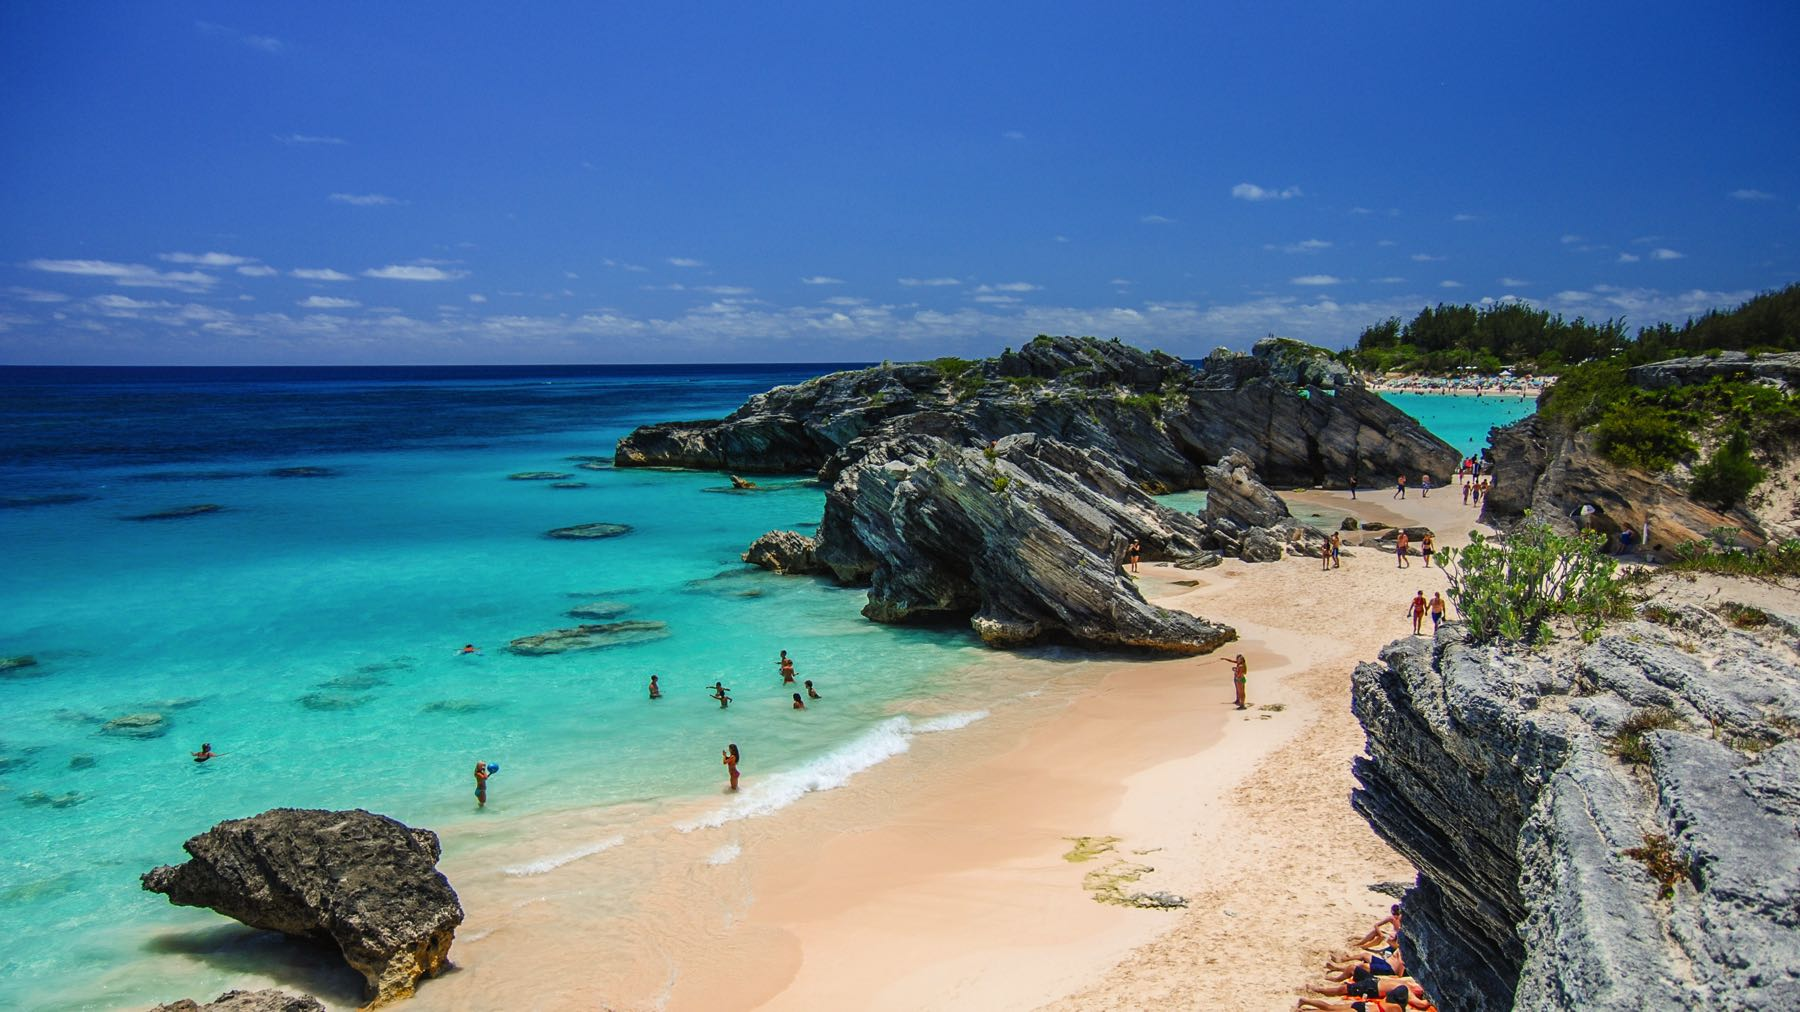 7 Places To Visit in Bermuda: A Travel Guide